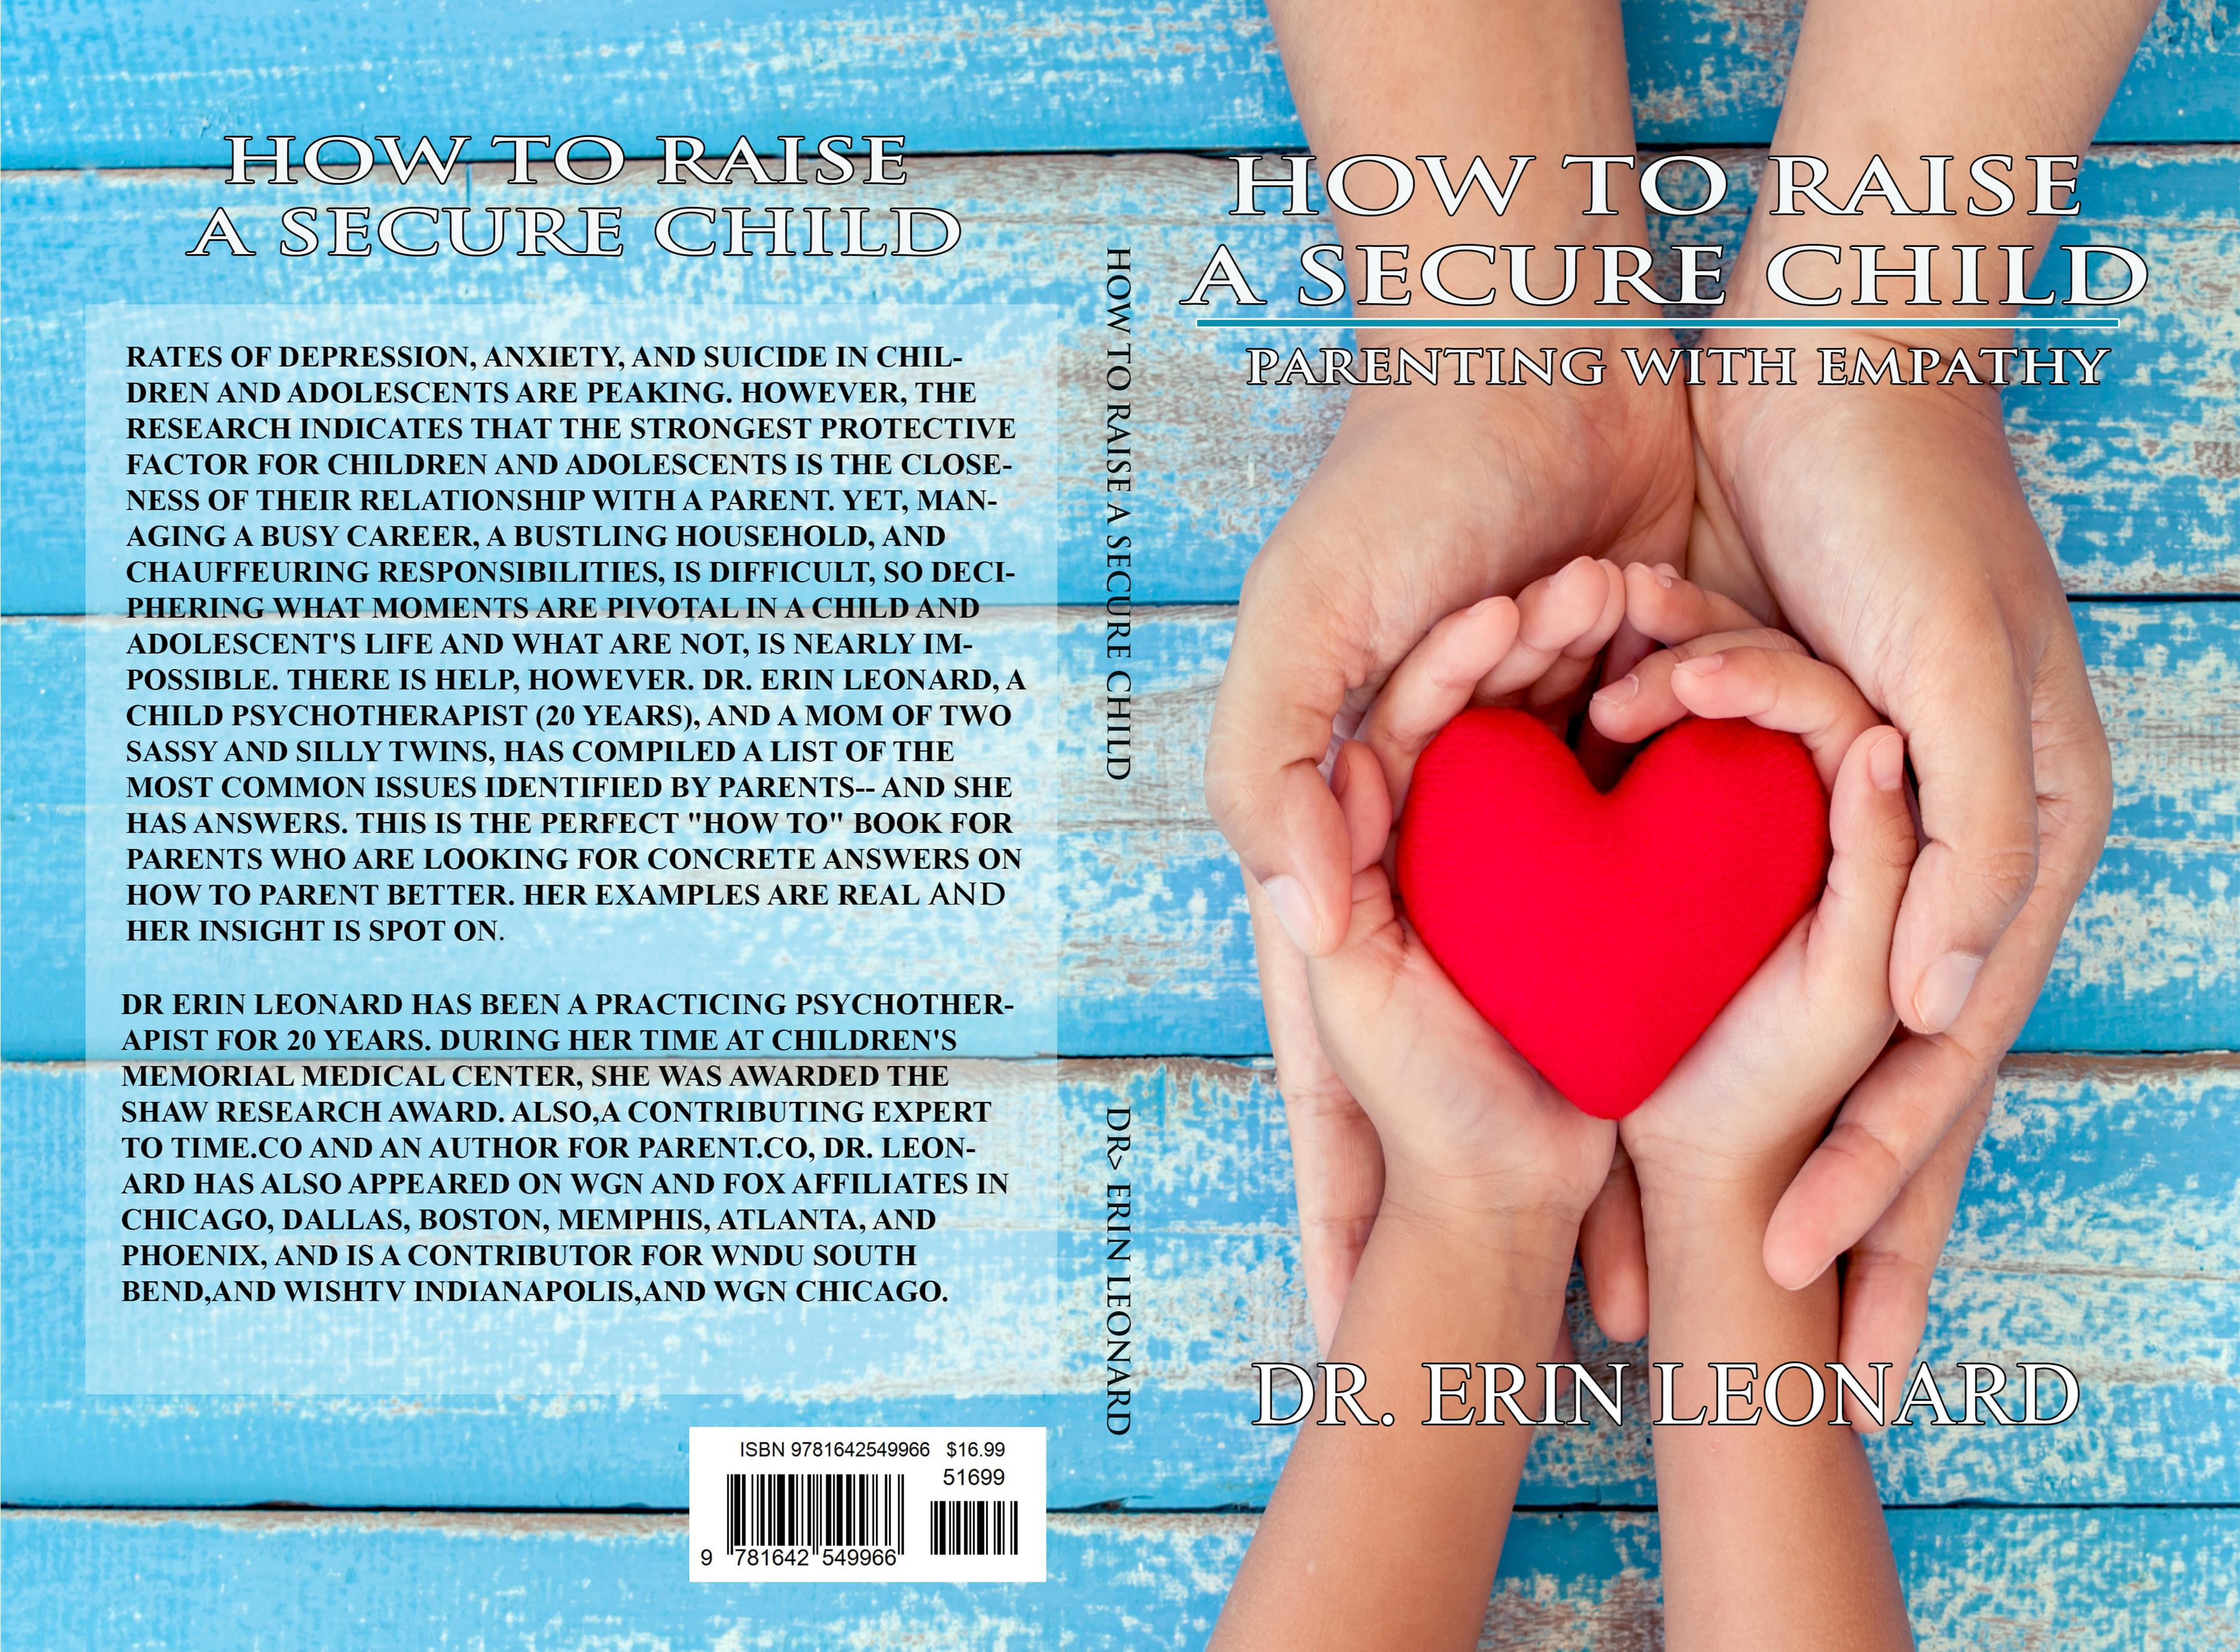 How To Raise A Secure Child, Parenting With Empathy cover image